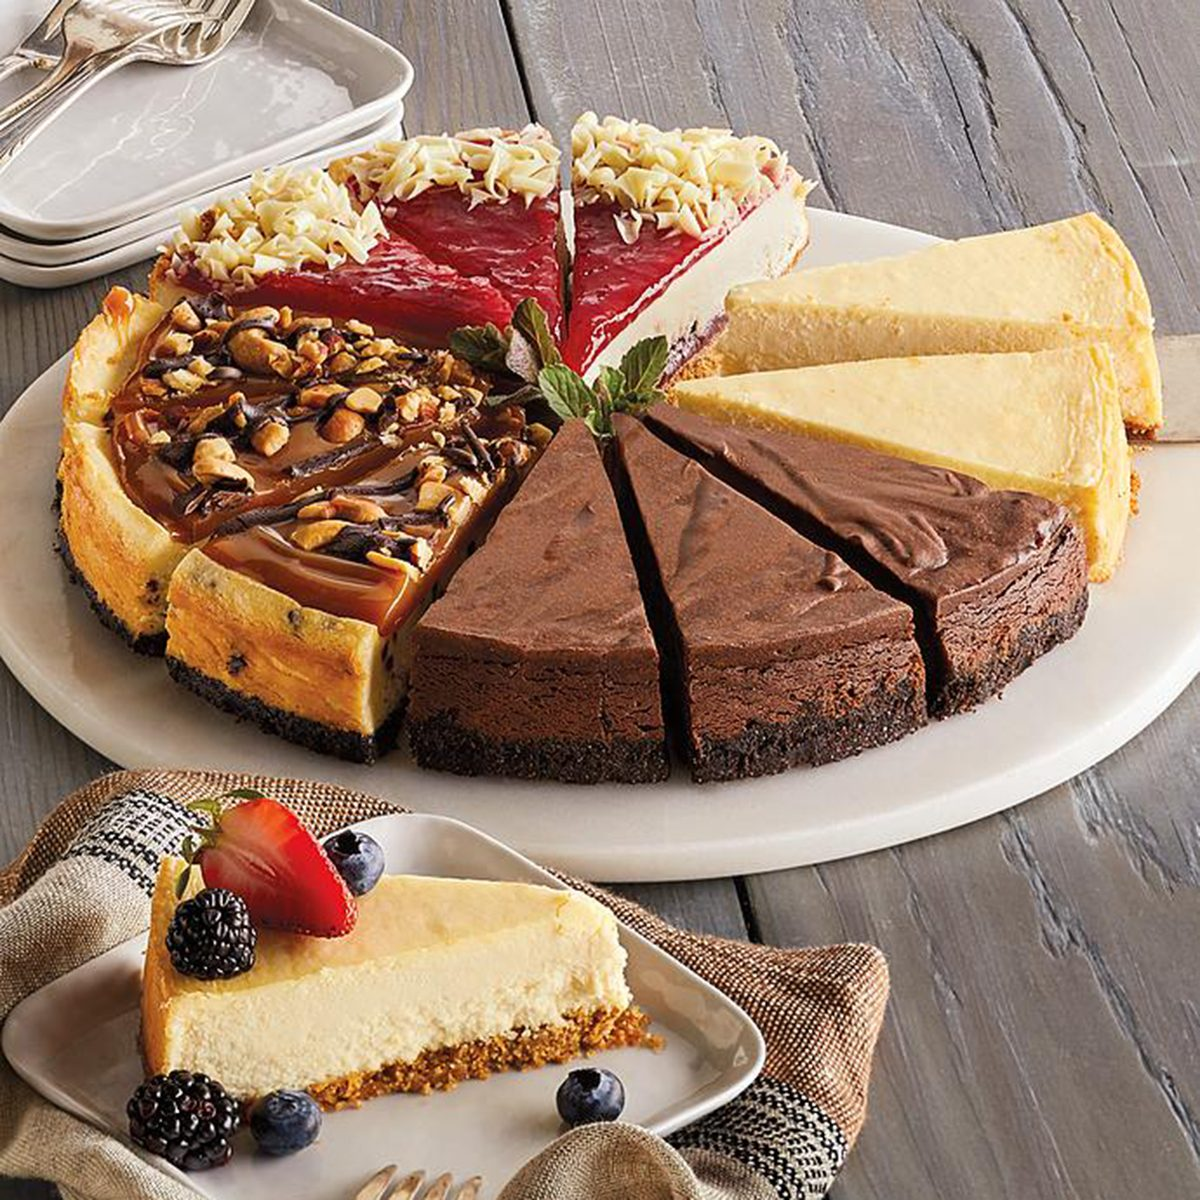 Dessert of the Month Club® Collection